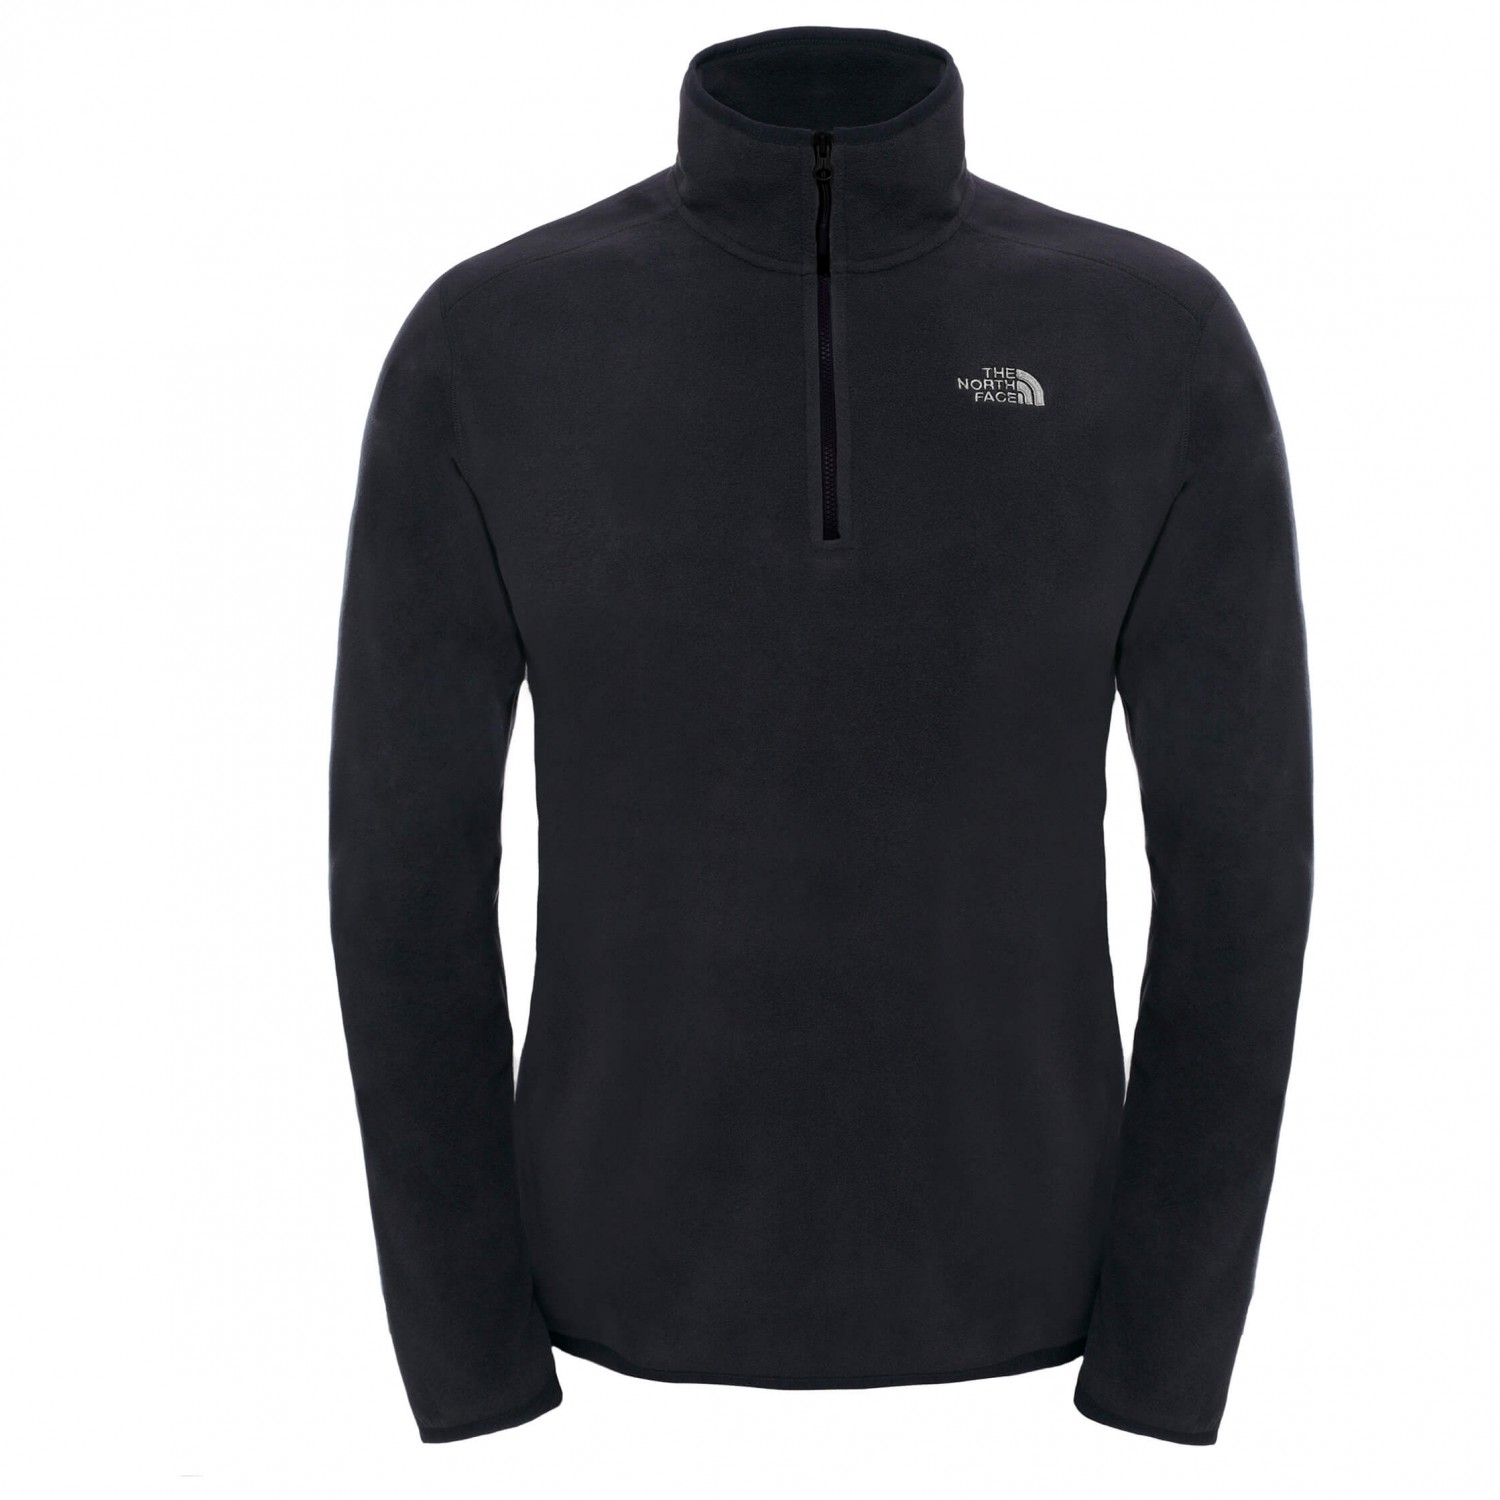 a8fe1cde97 The North Face 100 Glacier 1/4 Zip - Fleece Jumper Men's | Buy ...